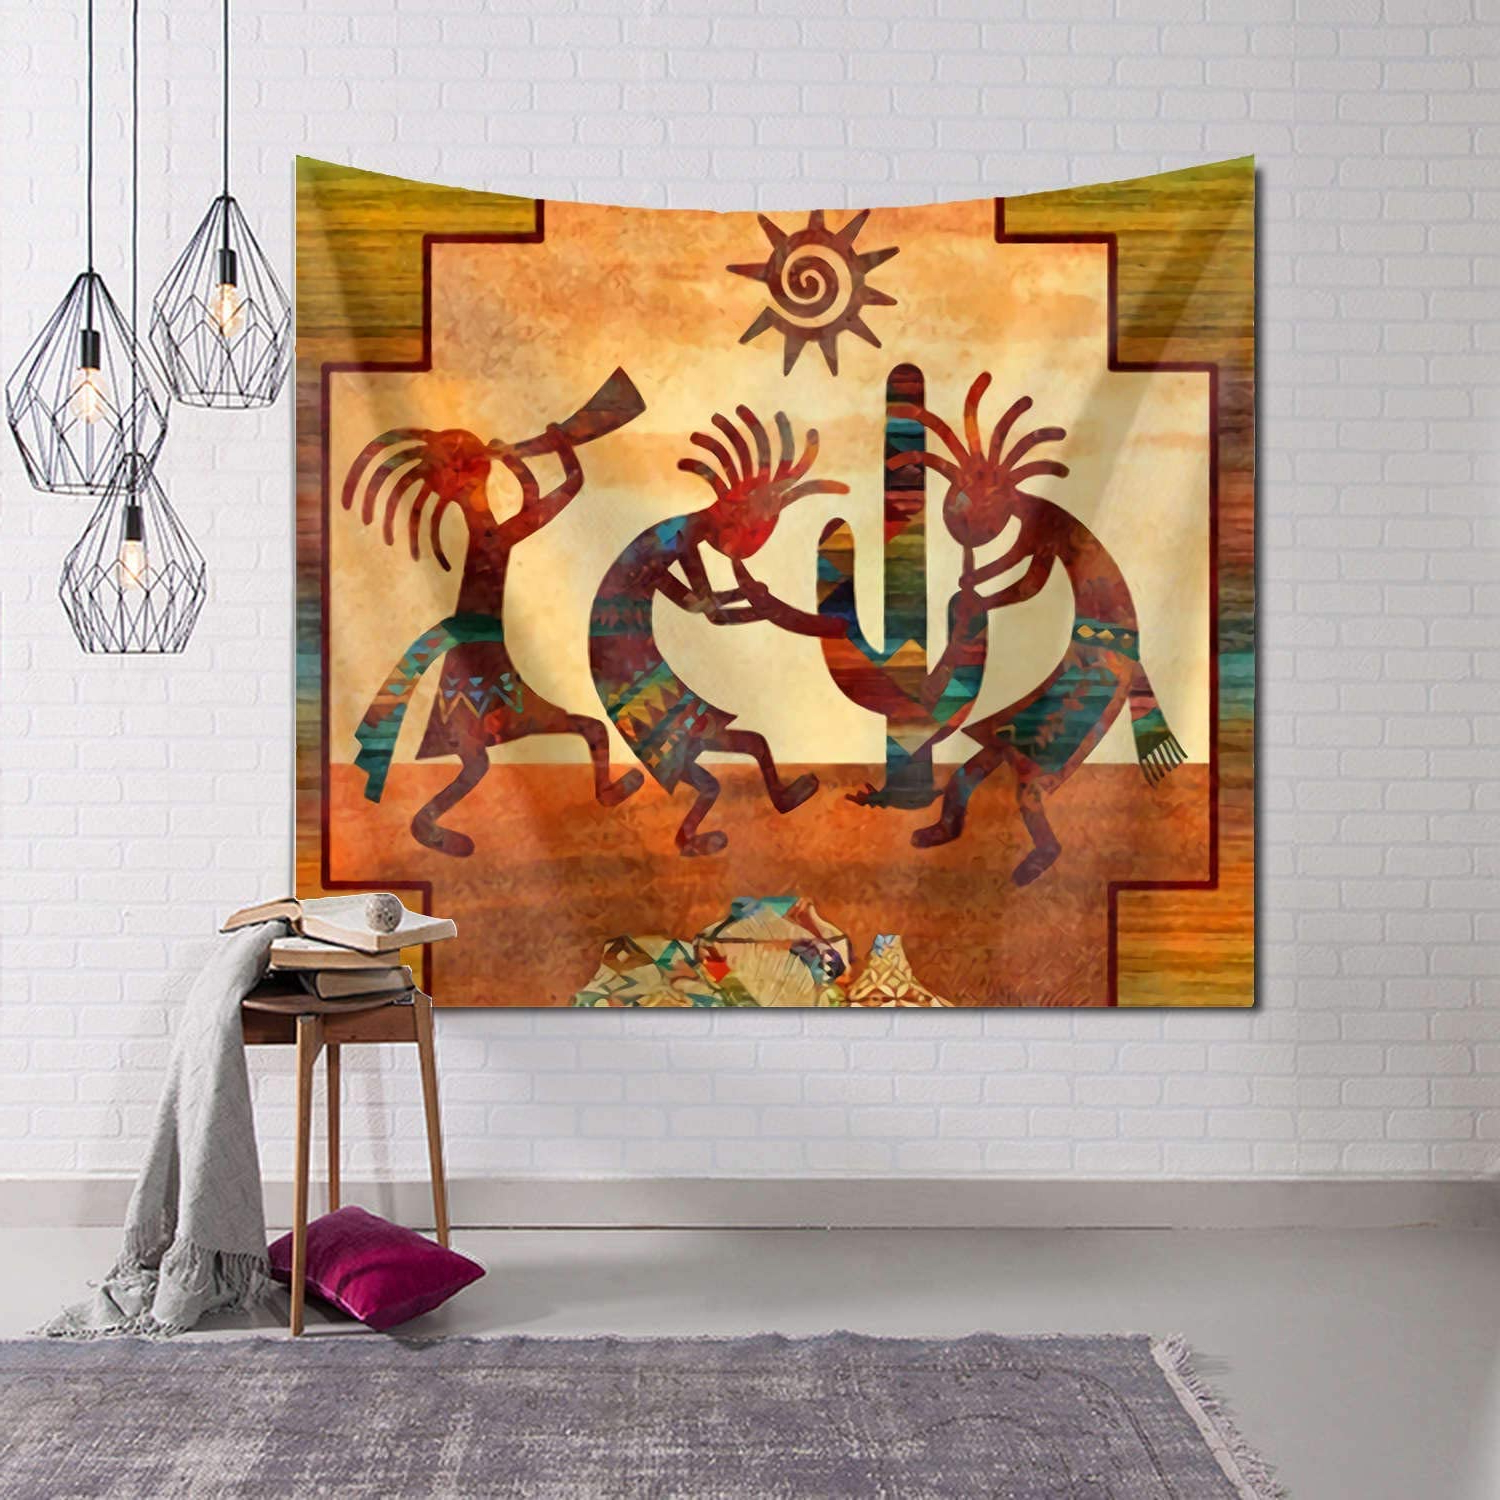 Most Recent Tidyki Southwest Native American Kokopelli Tapestry Wall Hanging Hippie Blanket Tapestries Home Decorations For Bedroom Living Room Dorm Decor 60x90 Throughout Blended Fabric Southwestern Bohemian Wall Hangings (View 7 of 20)